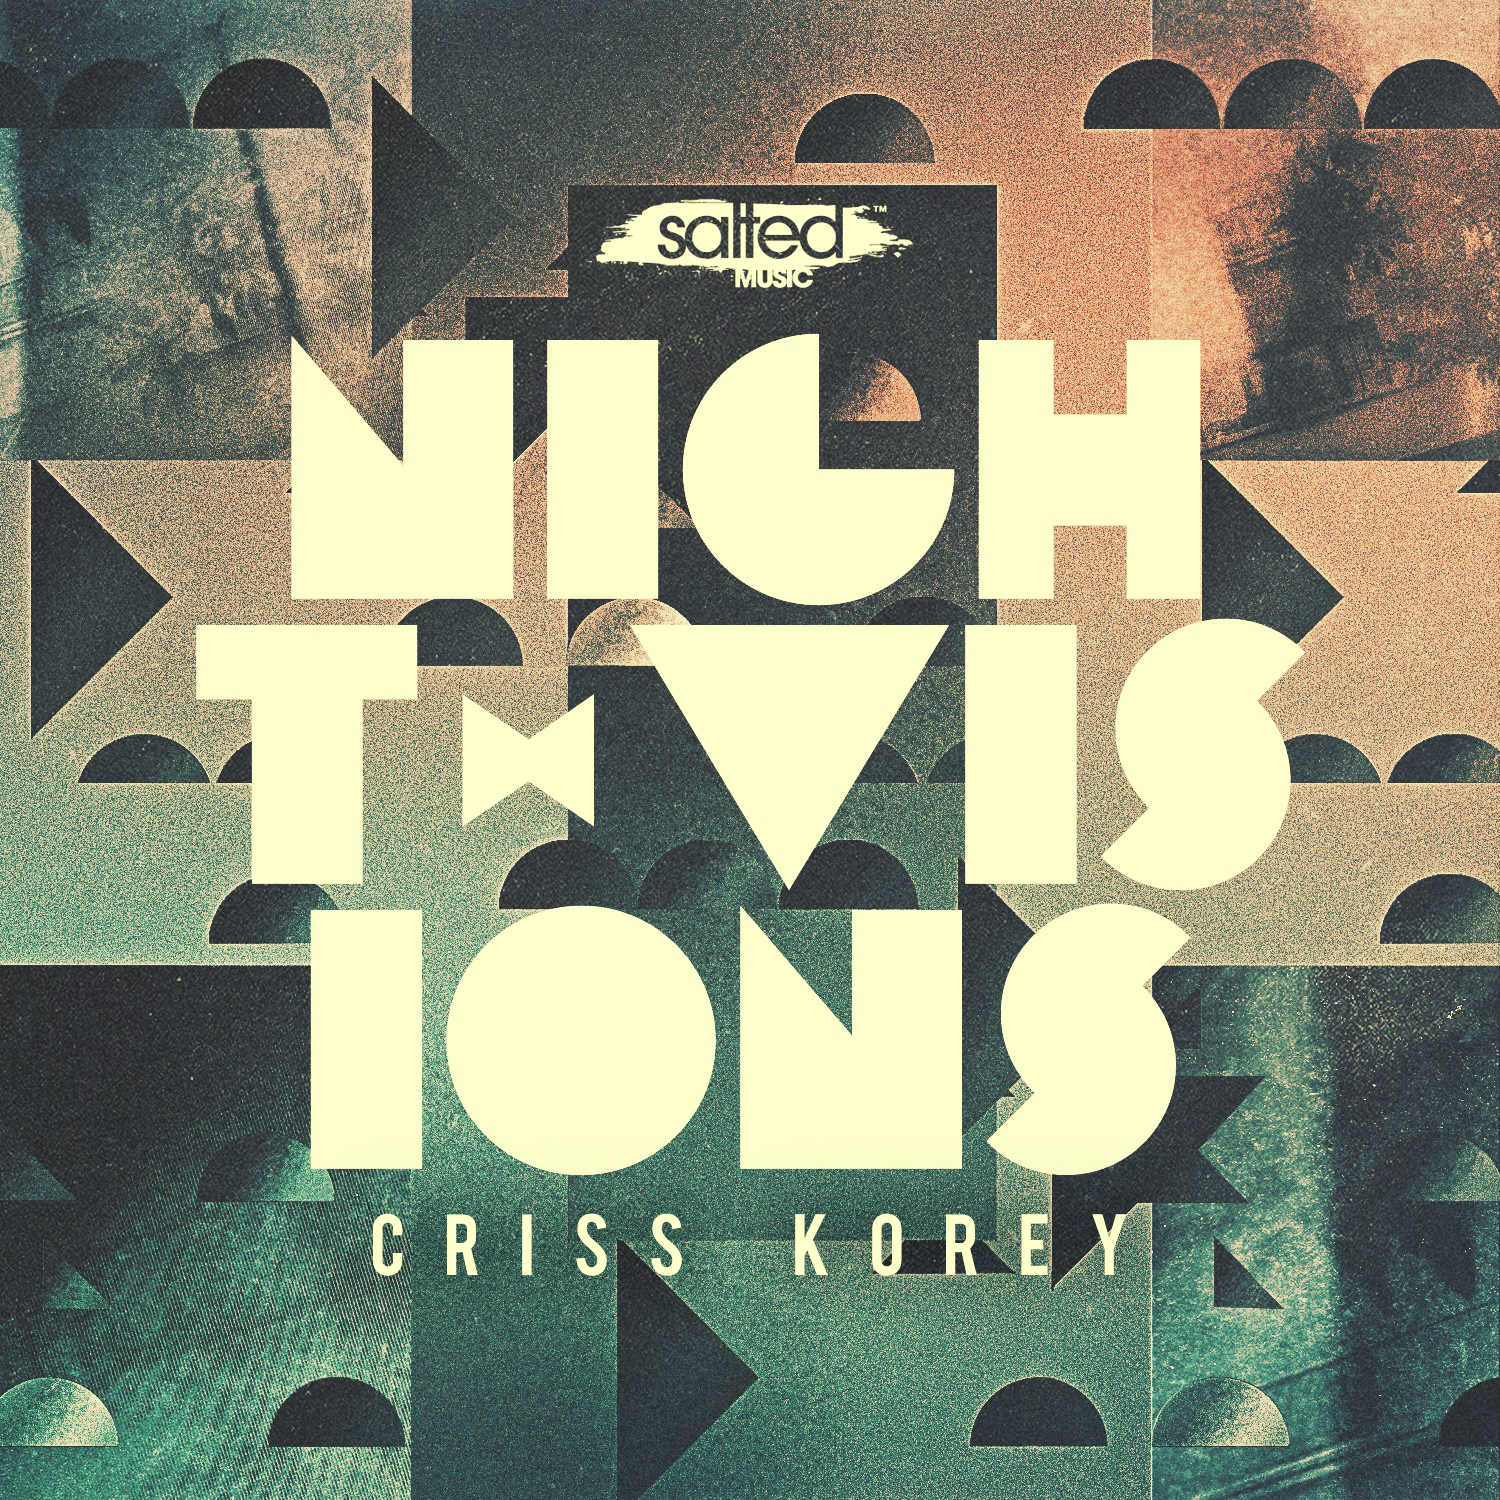 SLT116: Night Visions Criss Korey Salted Music